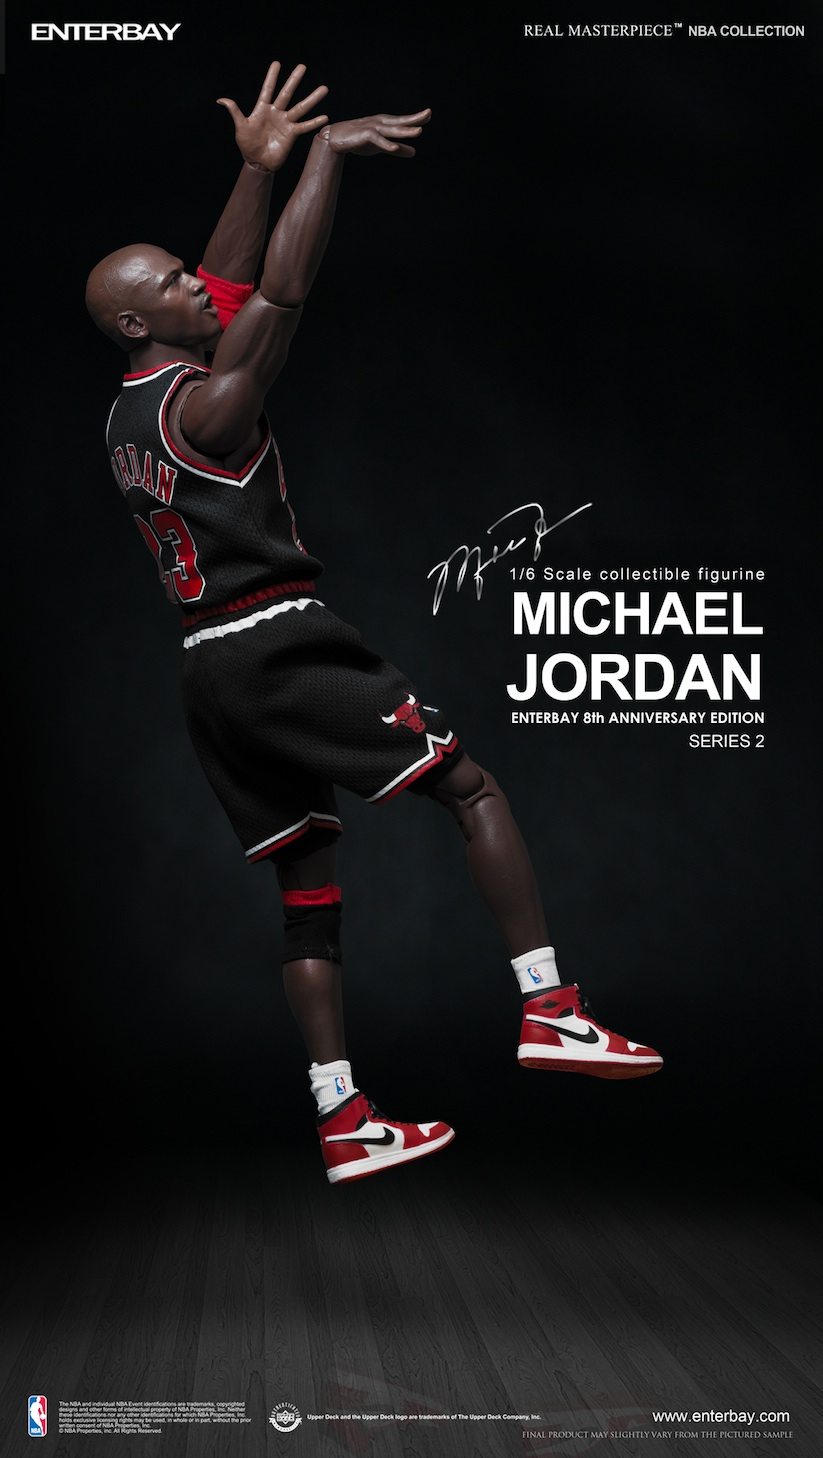 1_6_Scale_Collectible_Michael_Jordan_Figure_by_Enterbay_2014_04